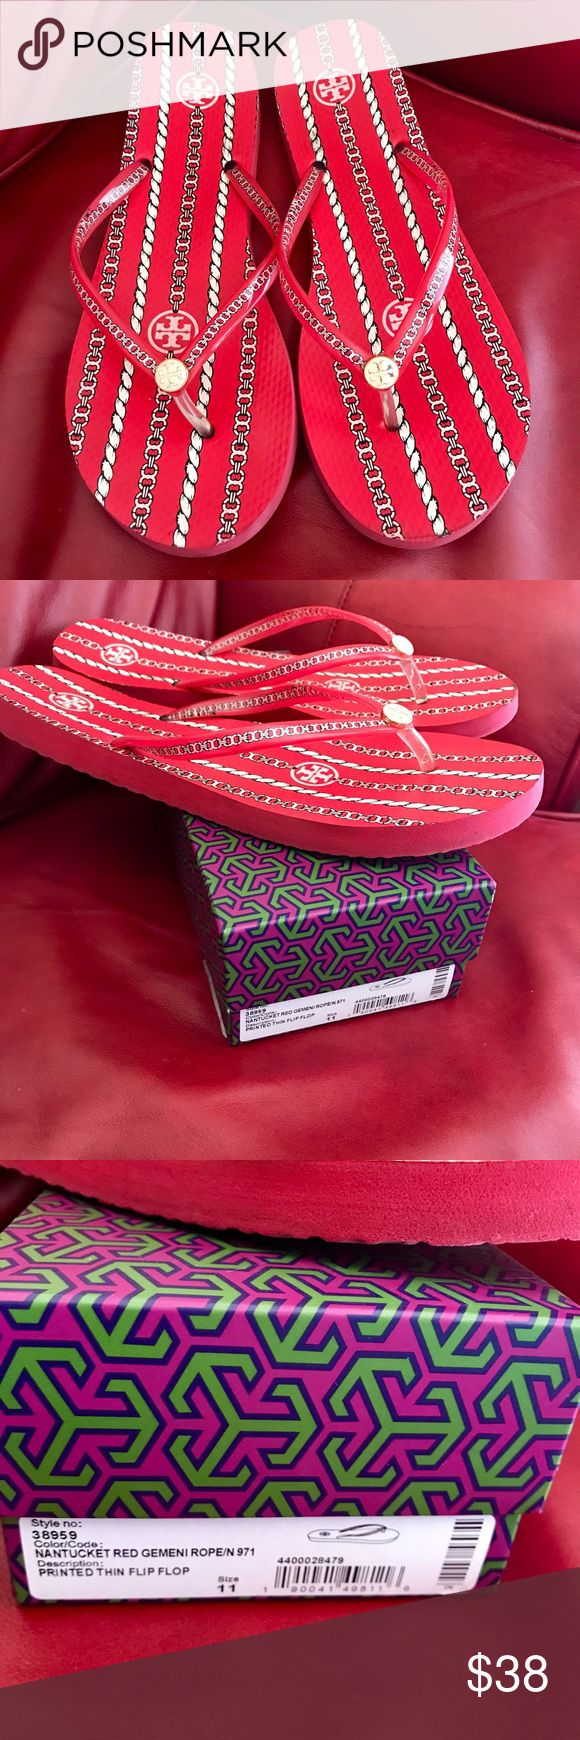 Tory Burch Printed Thin Flip Flop, Nantucket Red Tory Burch Printed Thin Flip Flop, Nantucket Red, size women's 11. I bought these for myself from Nordstrom this summer and they are a touch too big for me. Flip flops are in VGUC (see photos). Tory Burch Shoes Sandals